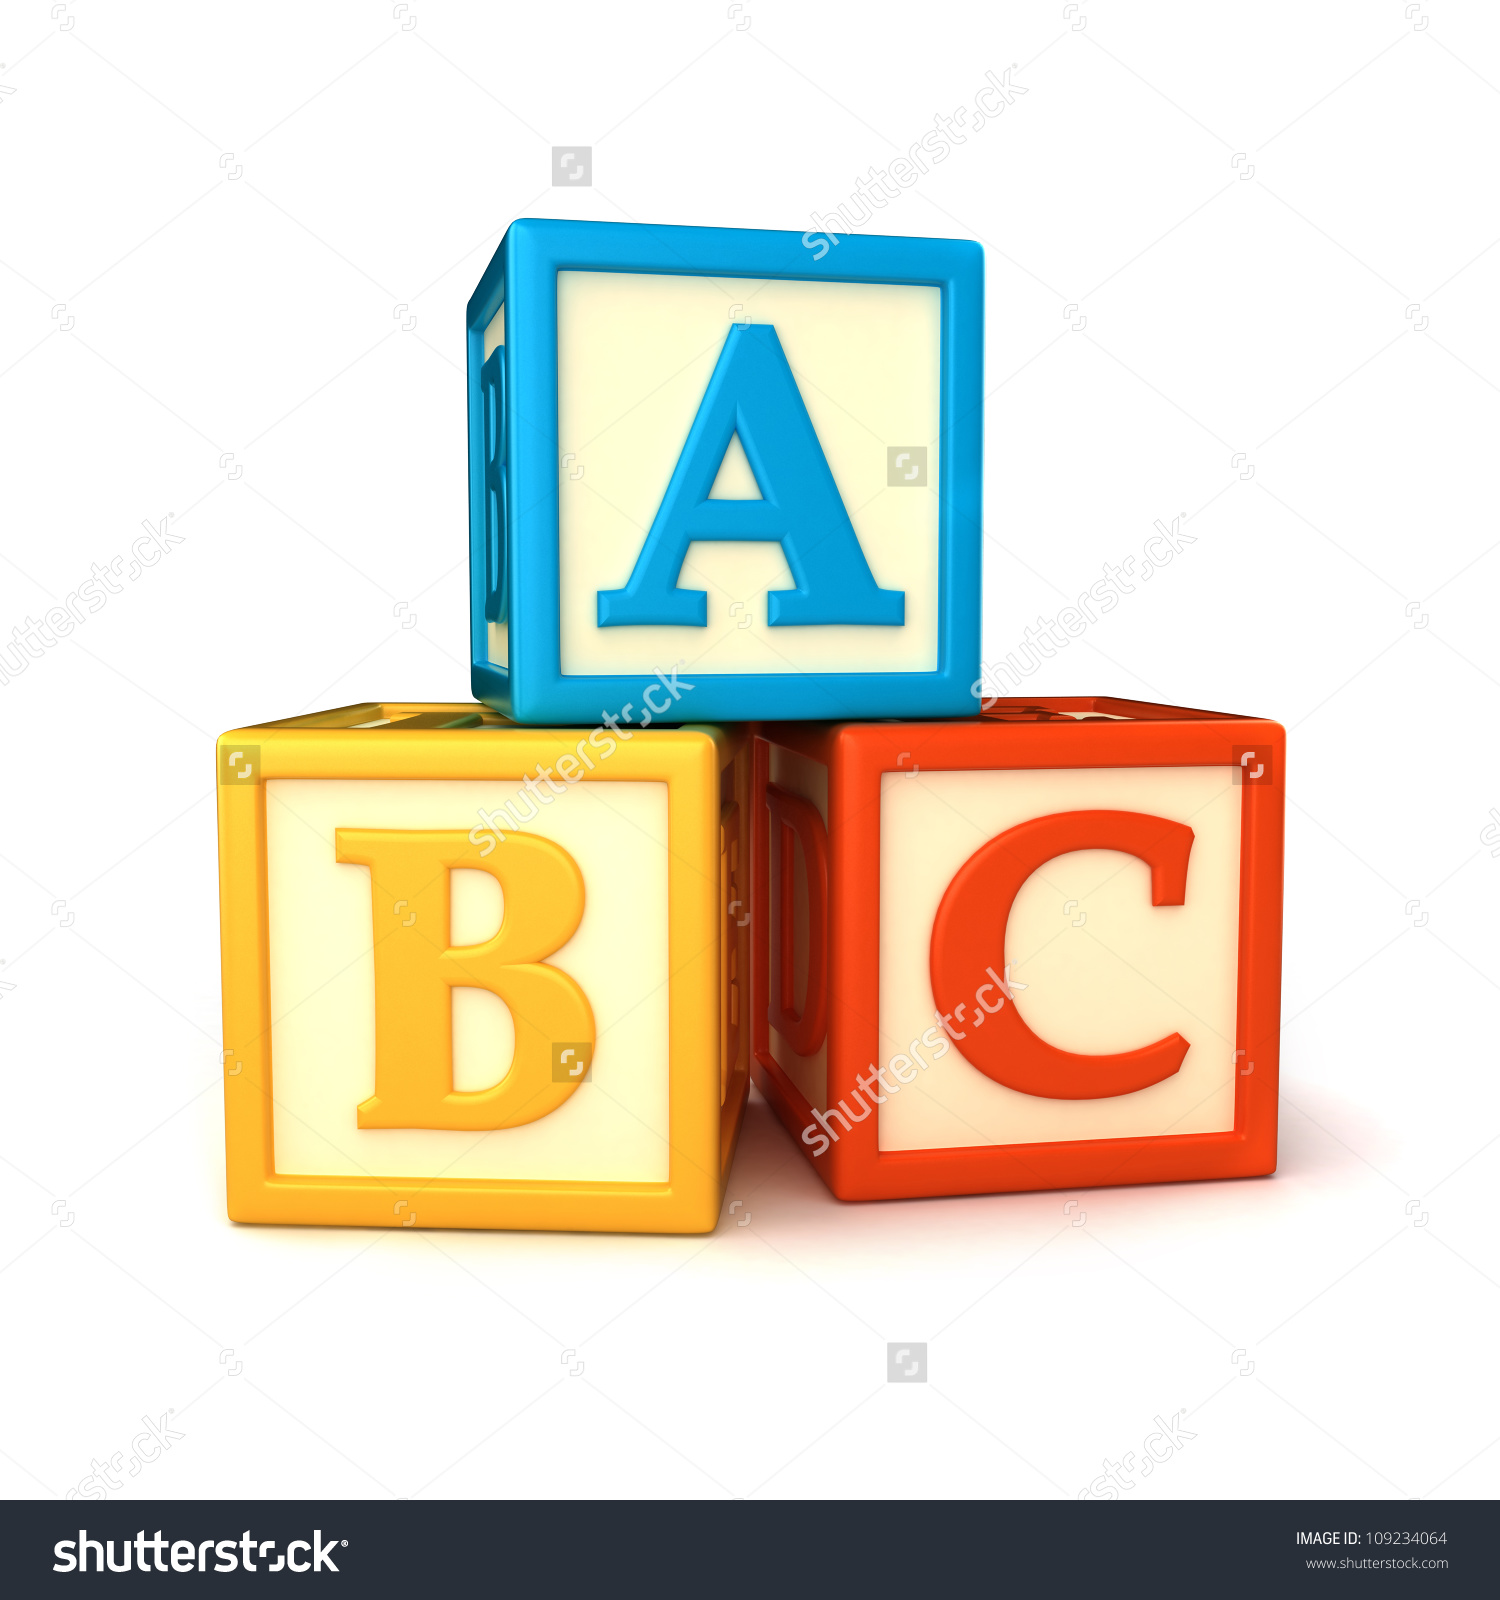 Alphabet clipartfest save to. Abc building blocks clipart